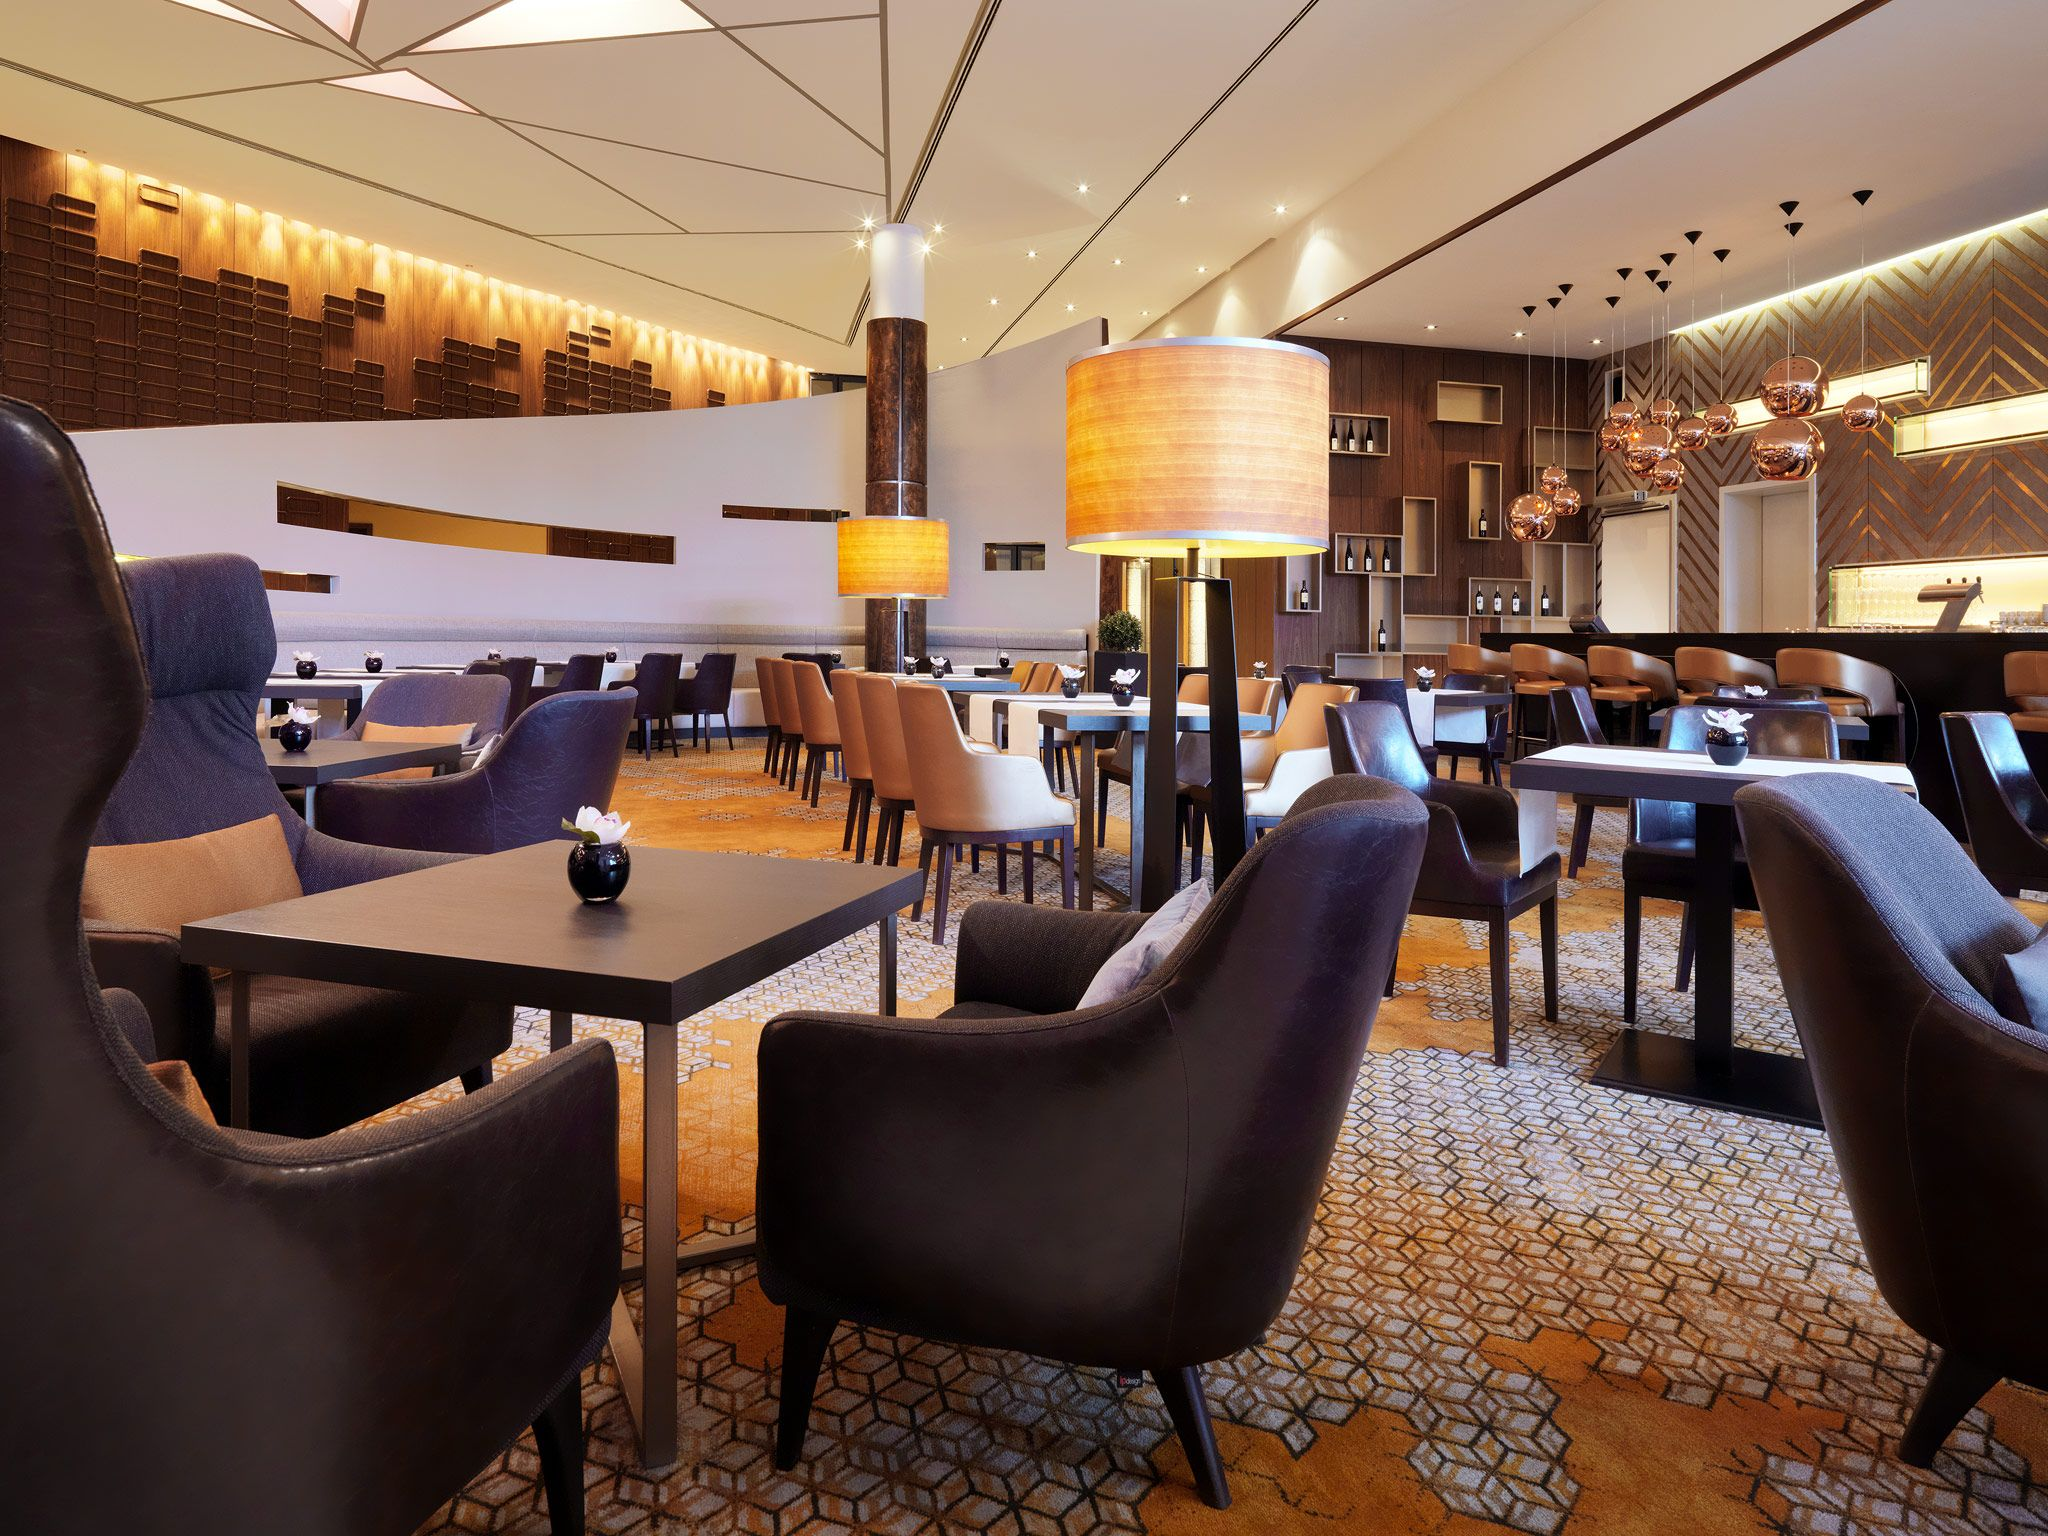 Ellipse Lounge Restaurant im Sheraton Berlin